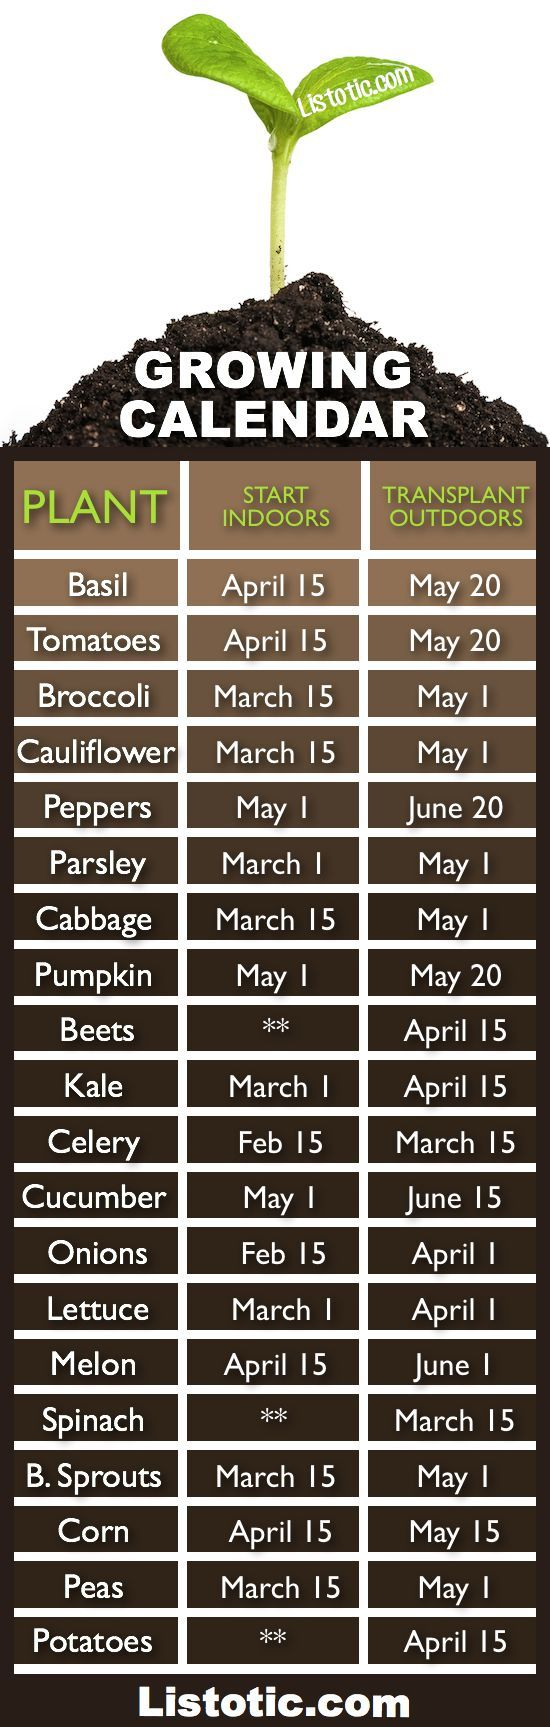 When to plant your vegetable garden!